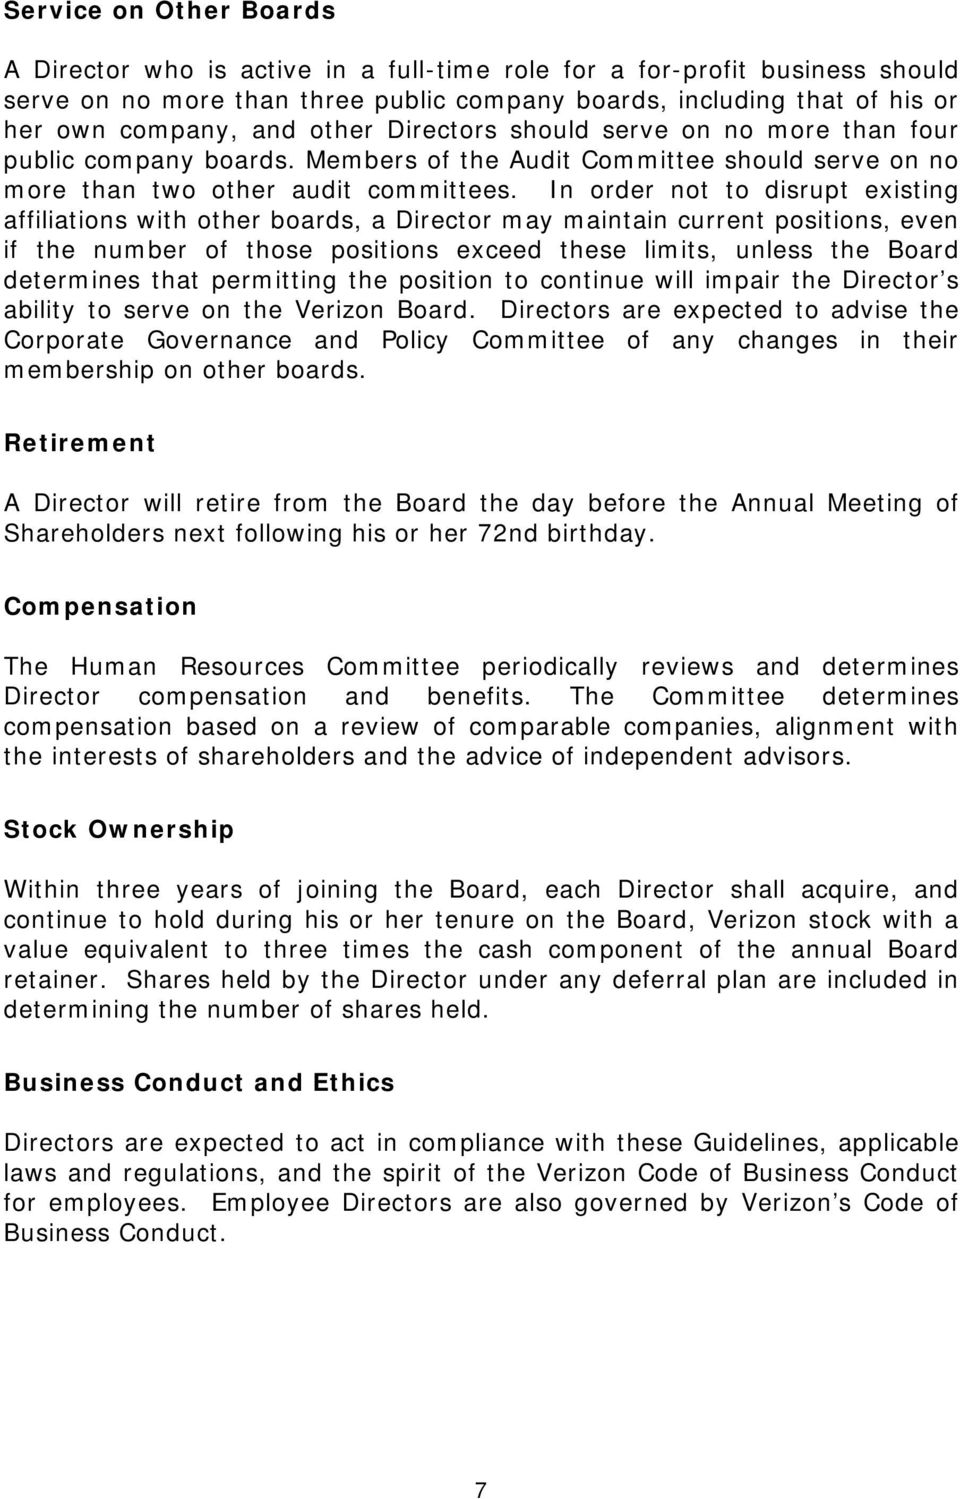 In order not to disrupt existing affiliations with other boards, a Director may maintain current positions, even if the number of those positions exceed these limits, unless the Board determines that